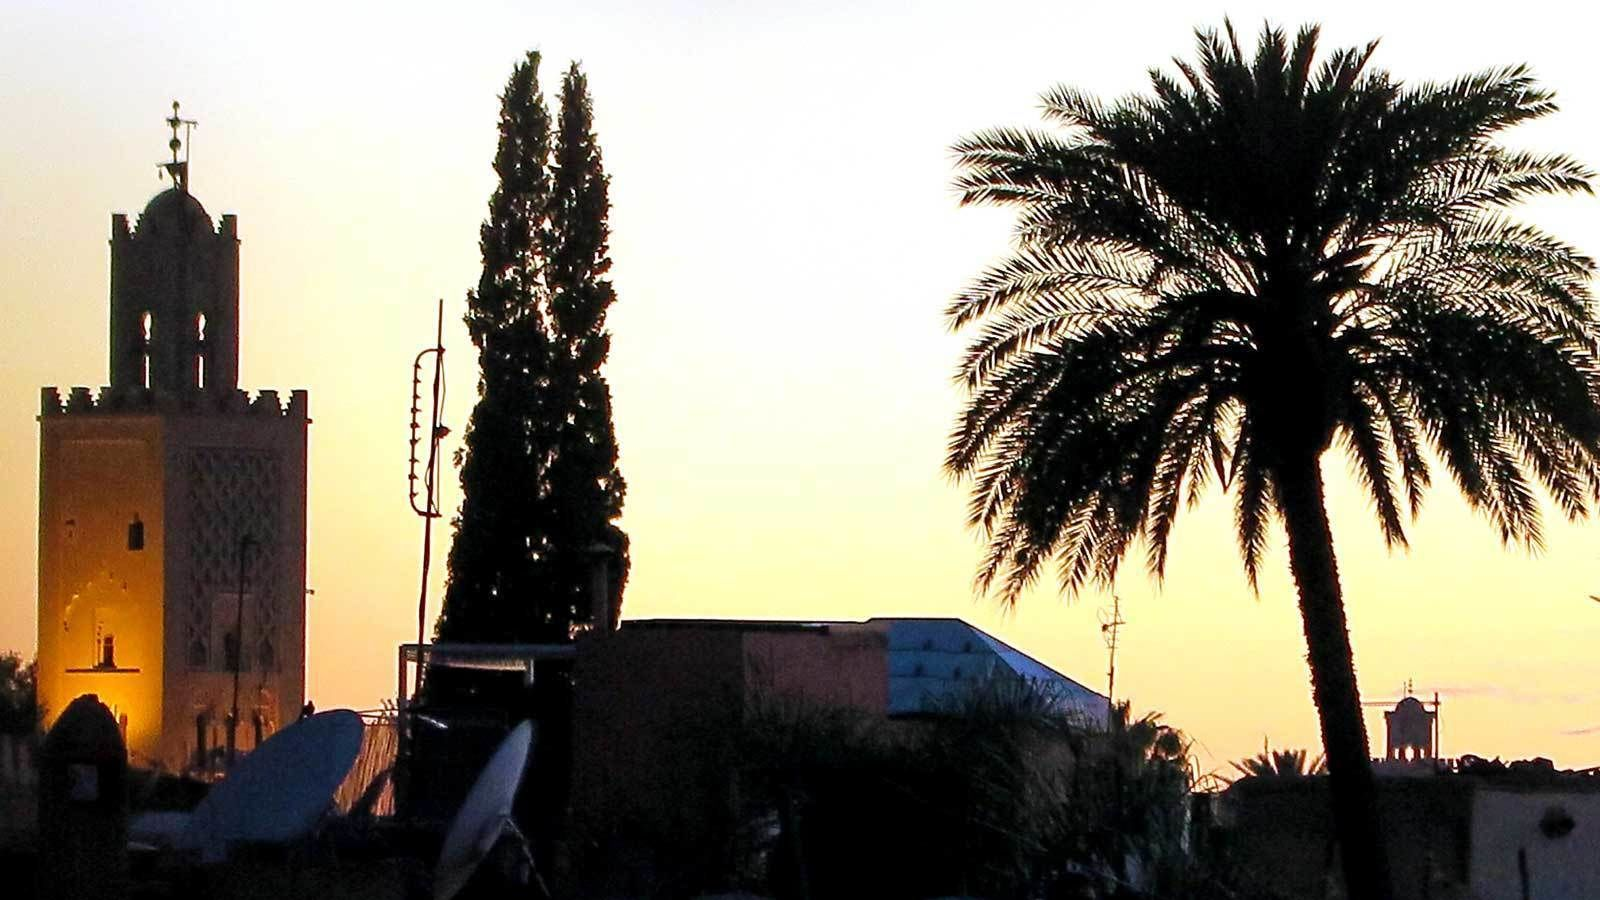 watching the sunset from the town in Marrakech